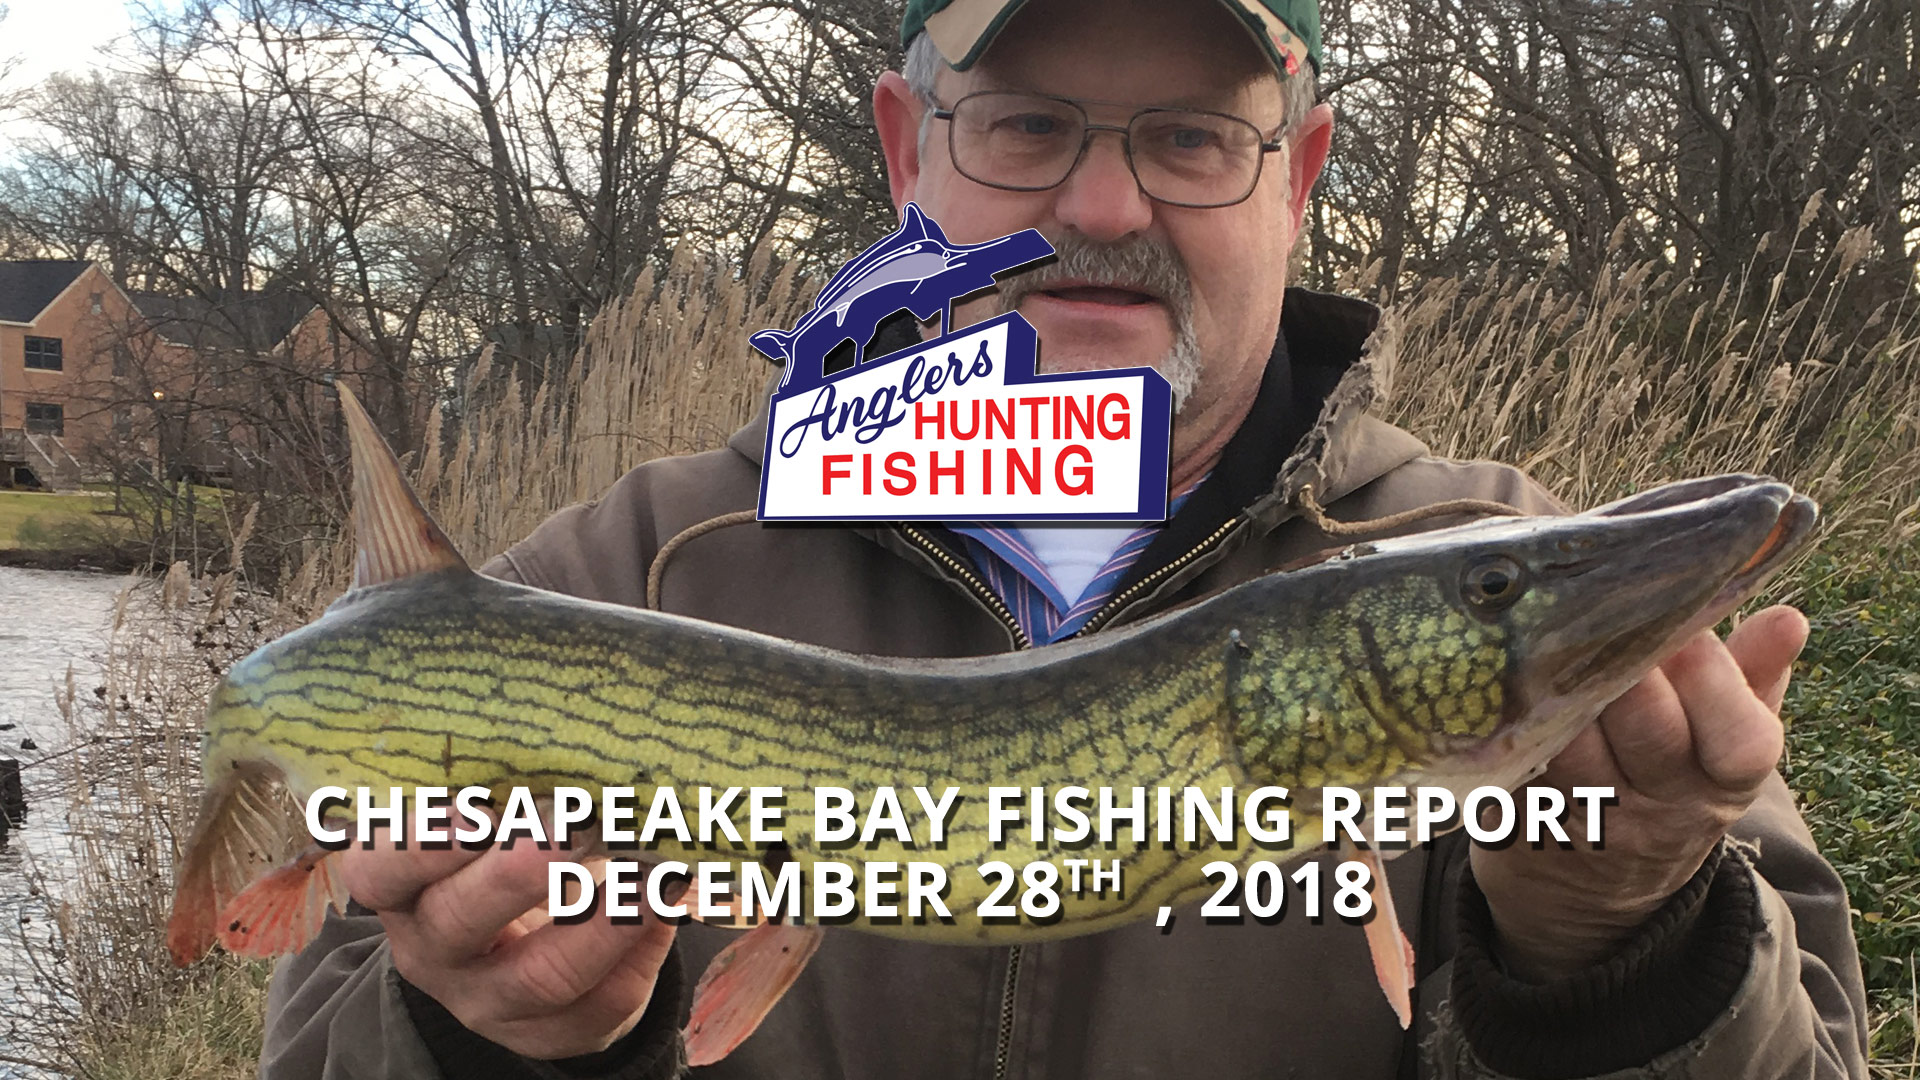 Chesapeake Bay Fishing Report - December 28th, 2018